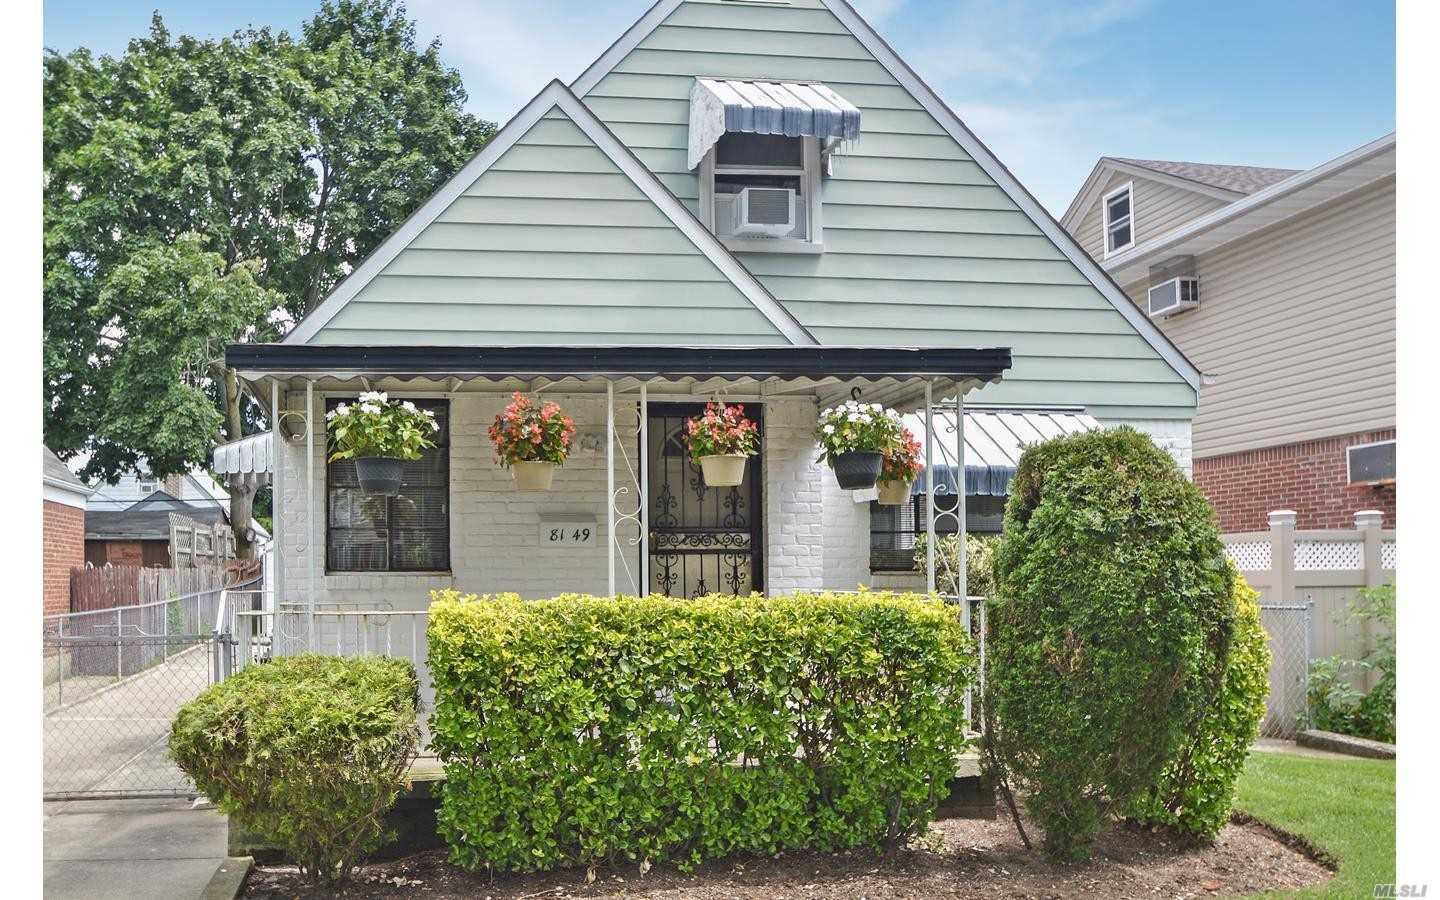 Beautiful Cape In Floral Park Queens On A Tree Lined Street Featuring 3 Bedrooms, 1 Full Bath, Finished Basement With Den/Office, Utility Room With Laundry, Long Private Driveway With A 1.5 Car Garage While Still Giving You Ample Back Yard Space For The Family. ** Gas Steam Heating System Is Only 2Yr Old**